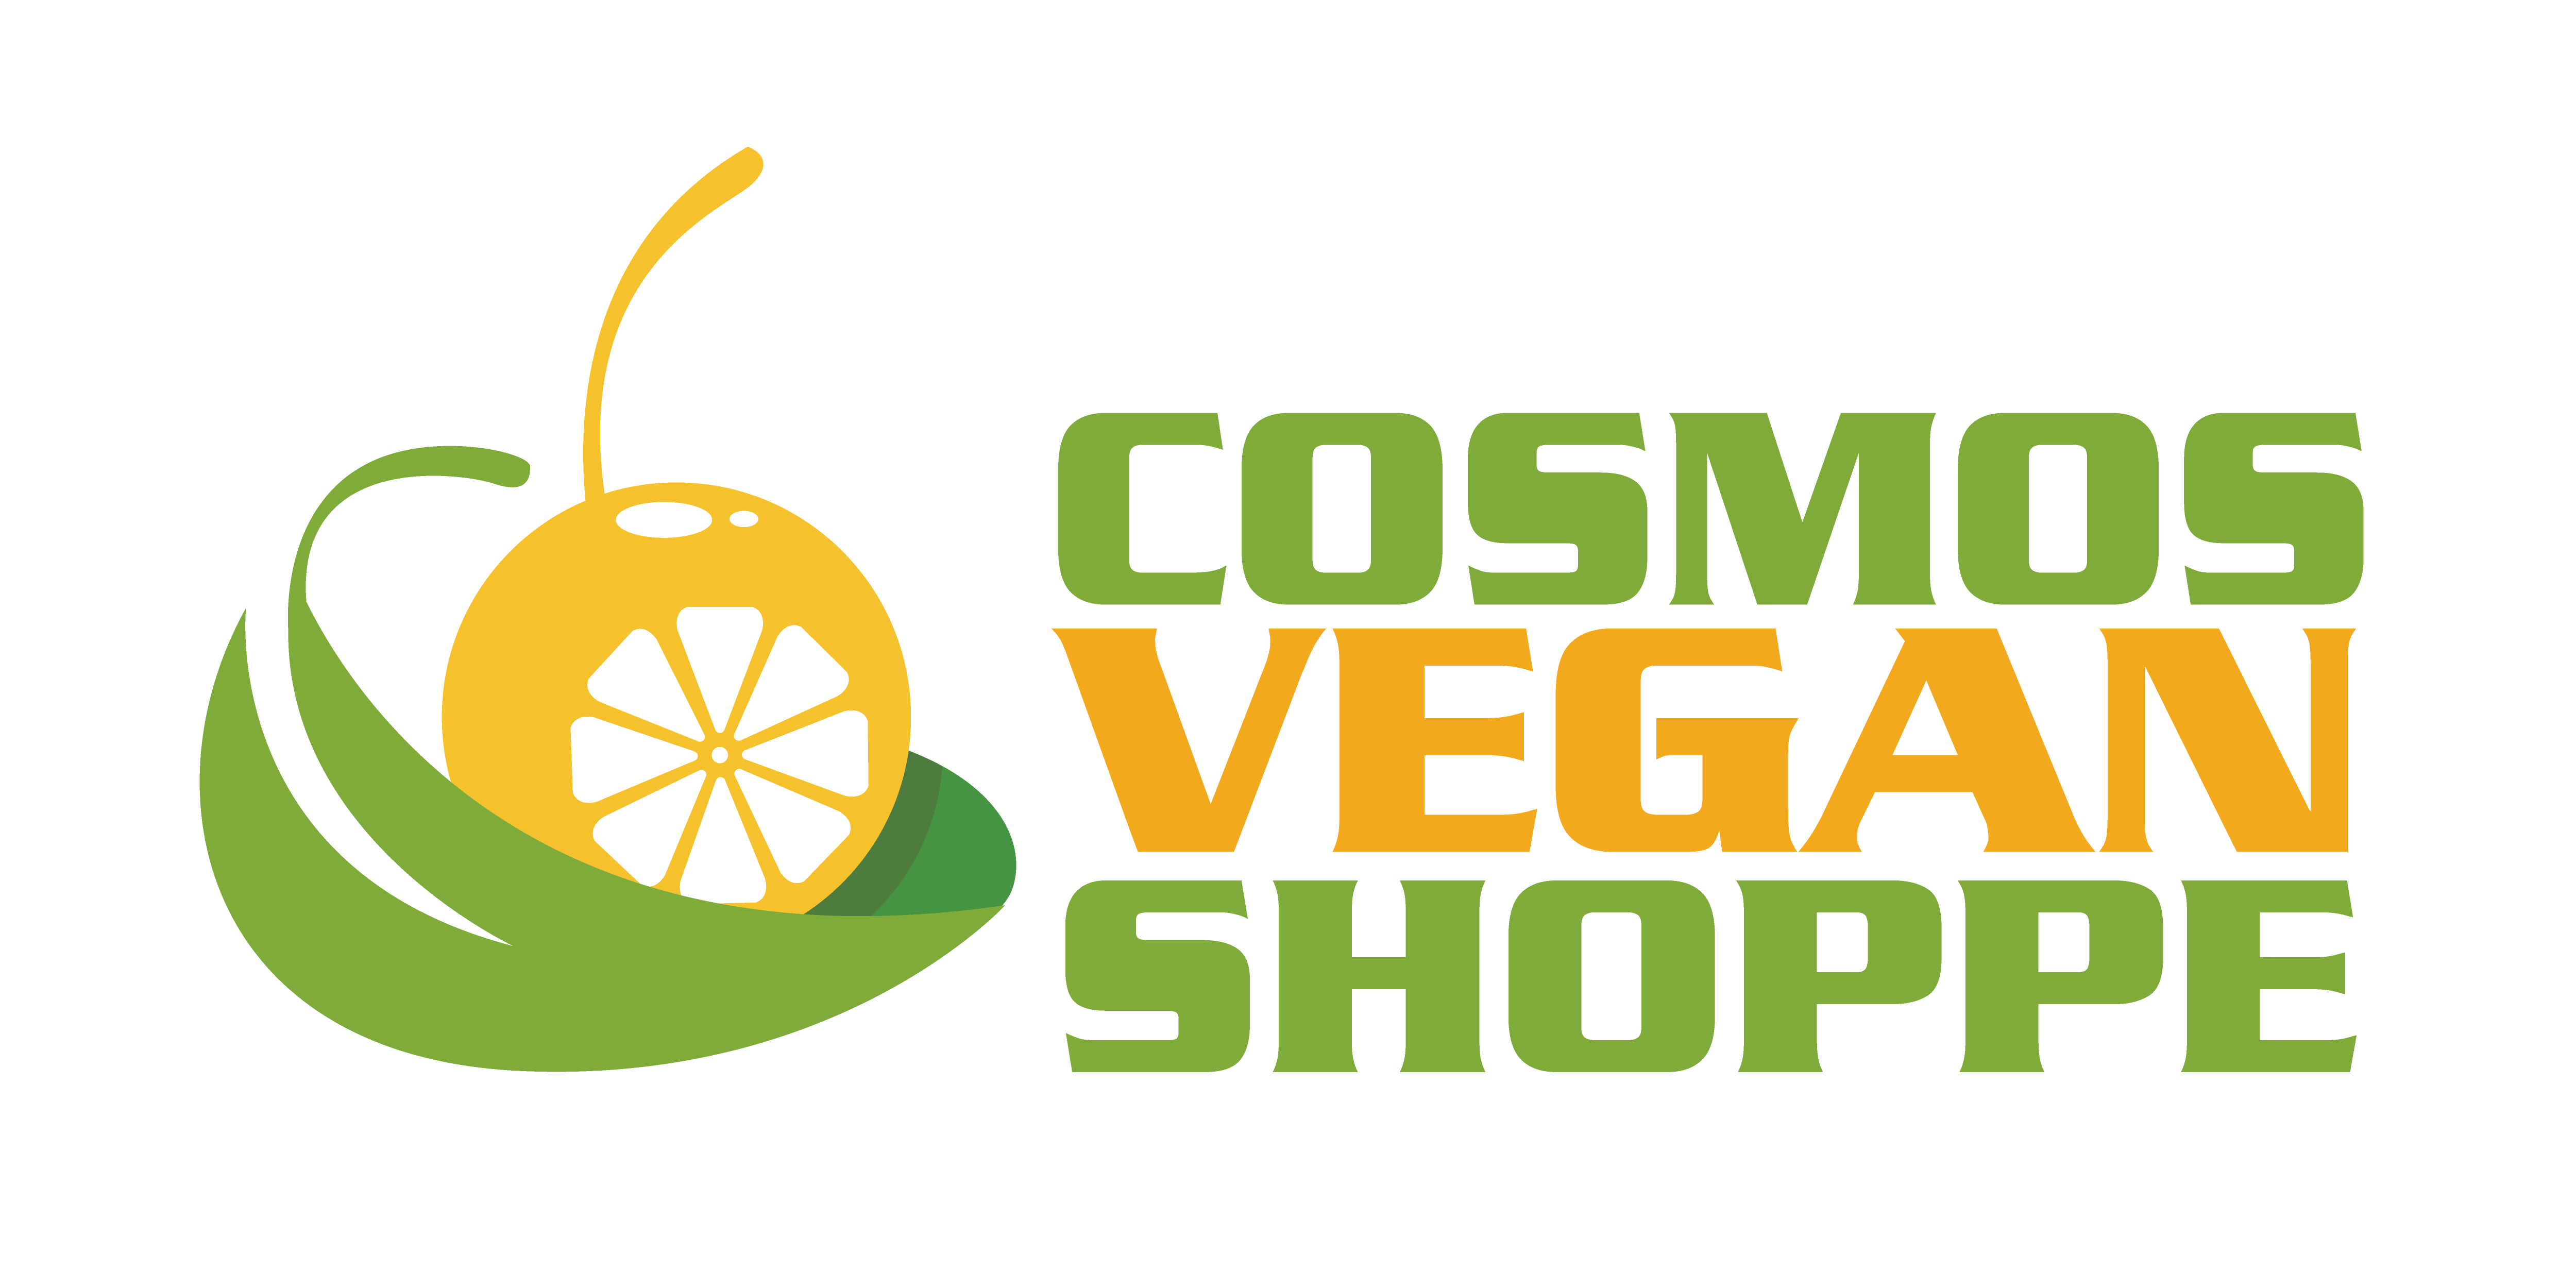 Cosmos Vegan Shoppe